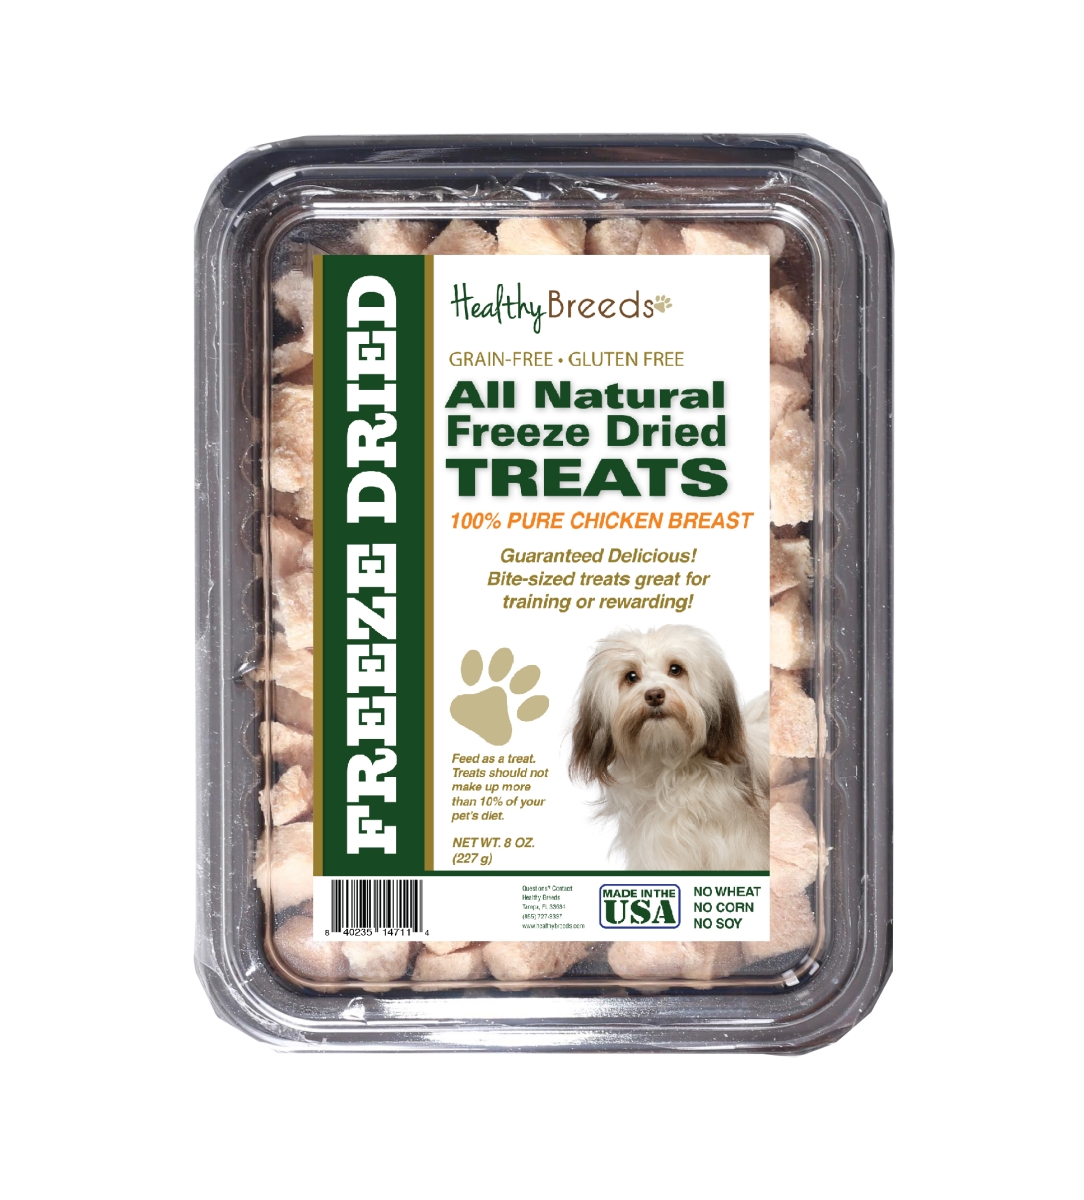 Healthy Breeds 840235147114 8 oz Havanese All Natural Freeze Dried Treats Chicken Breast